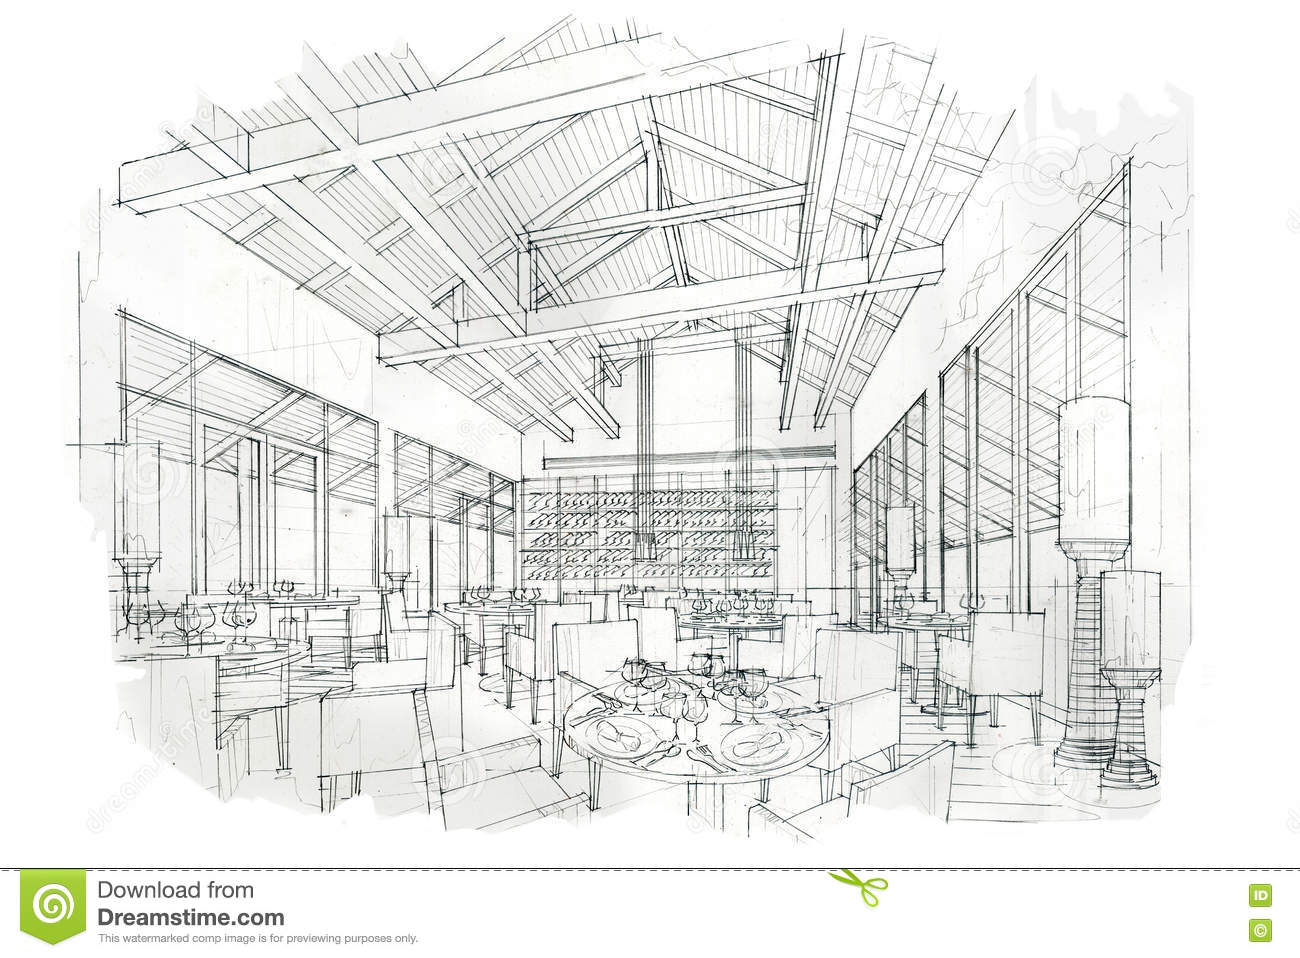 Sketch perspective interior restaurant black and white